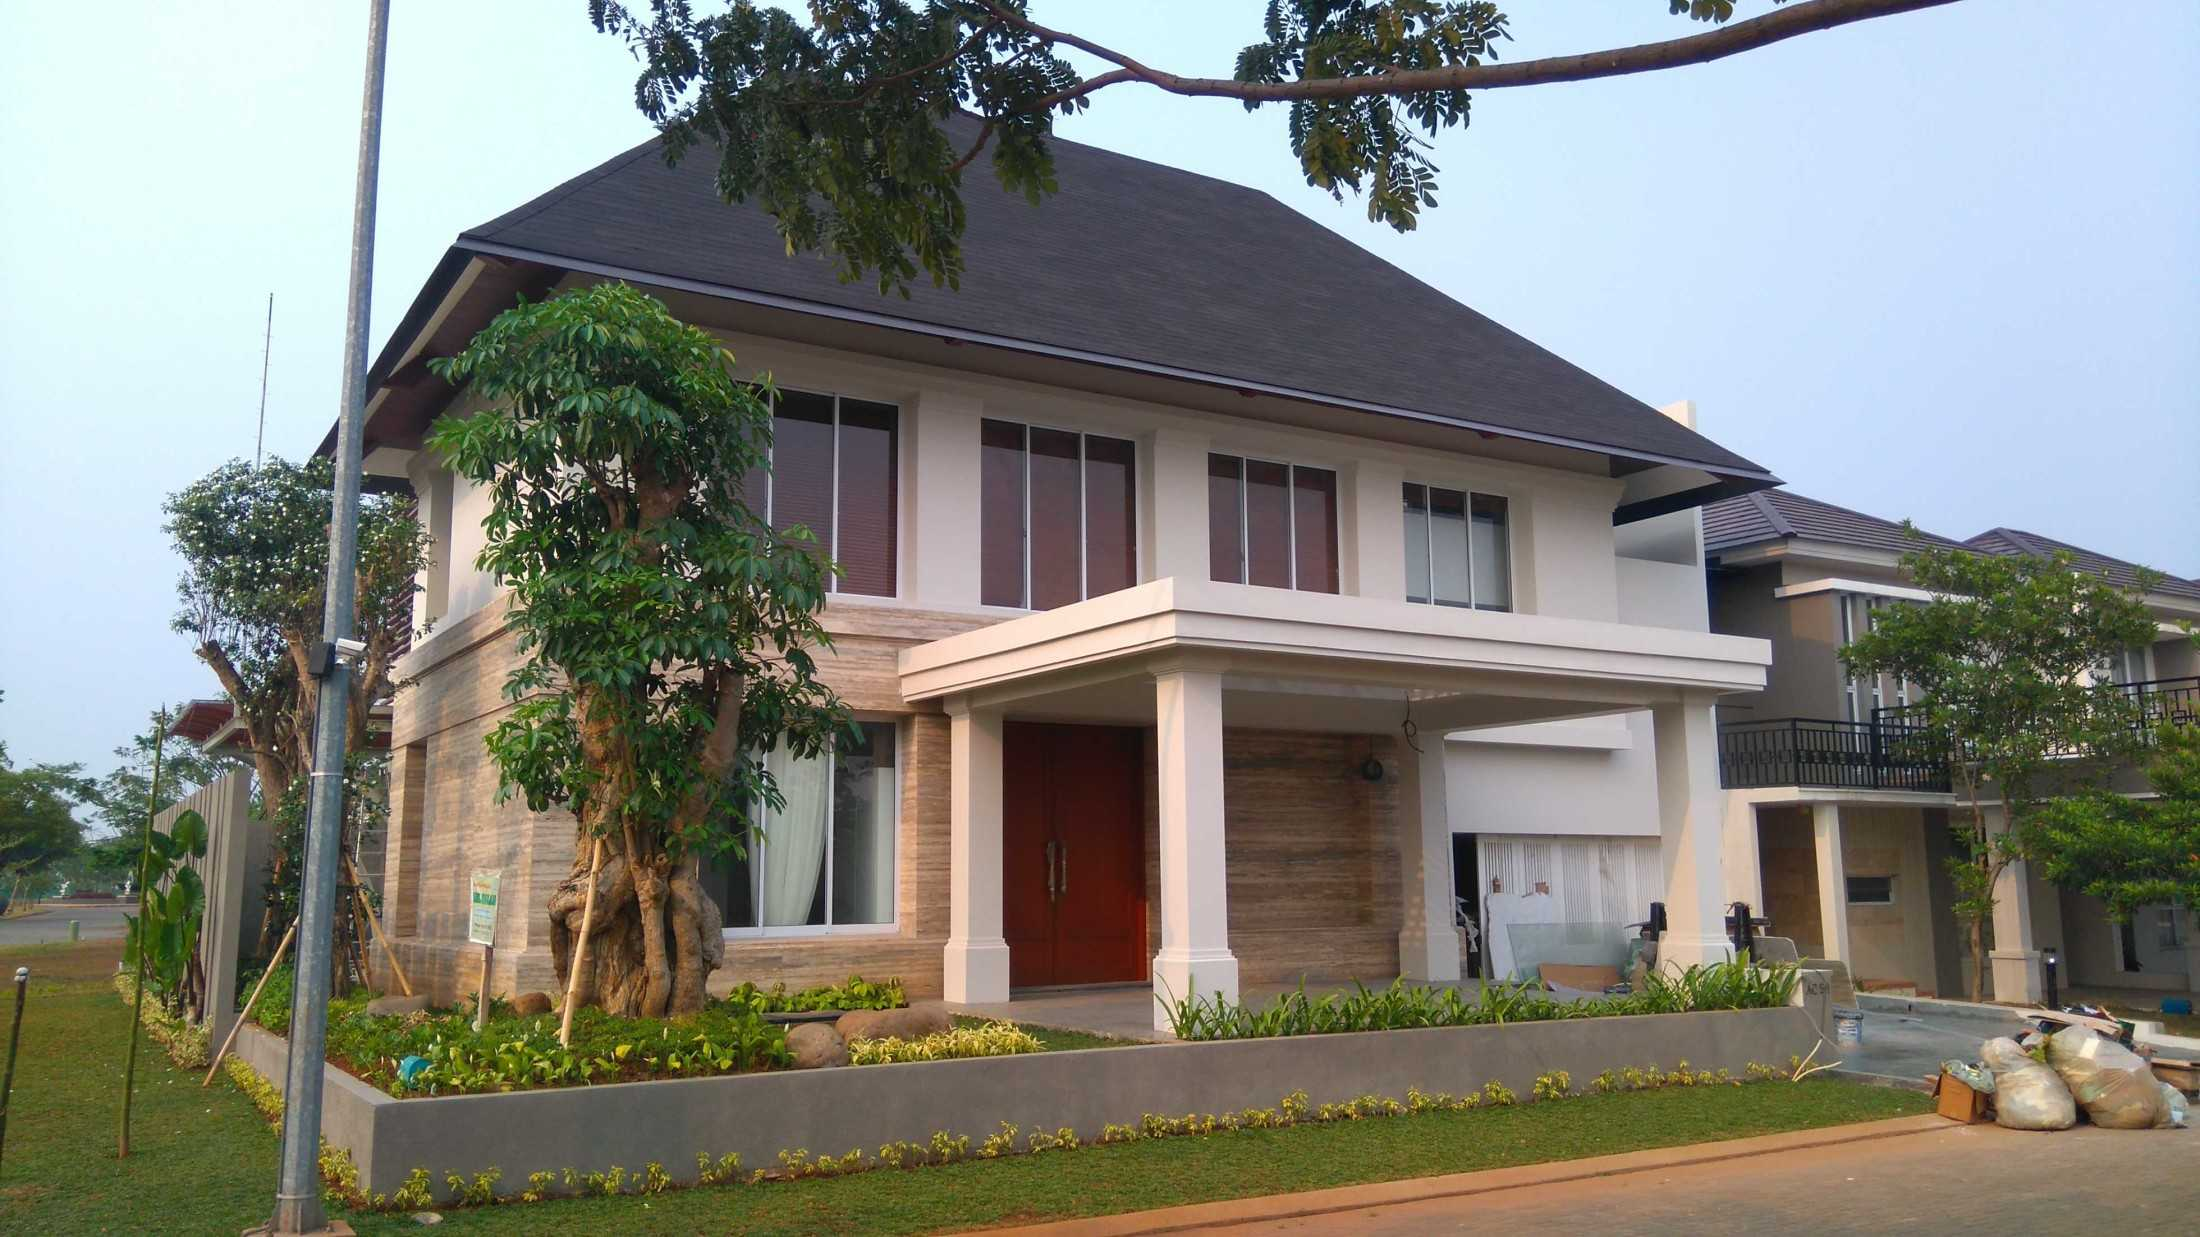 Jasa Design and Build Darmawangsa Design & Development di Tangerang Selatan